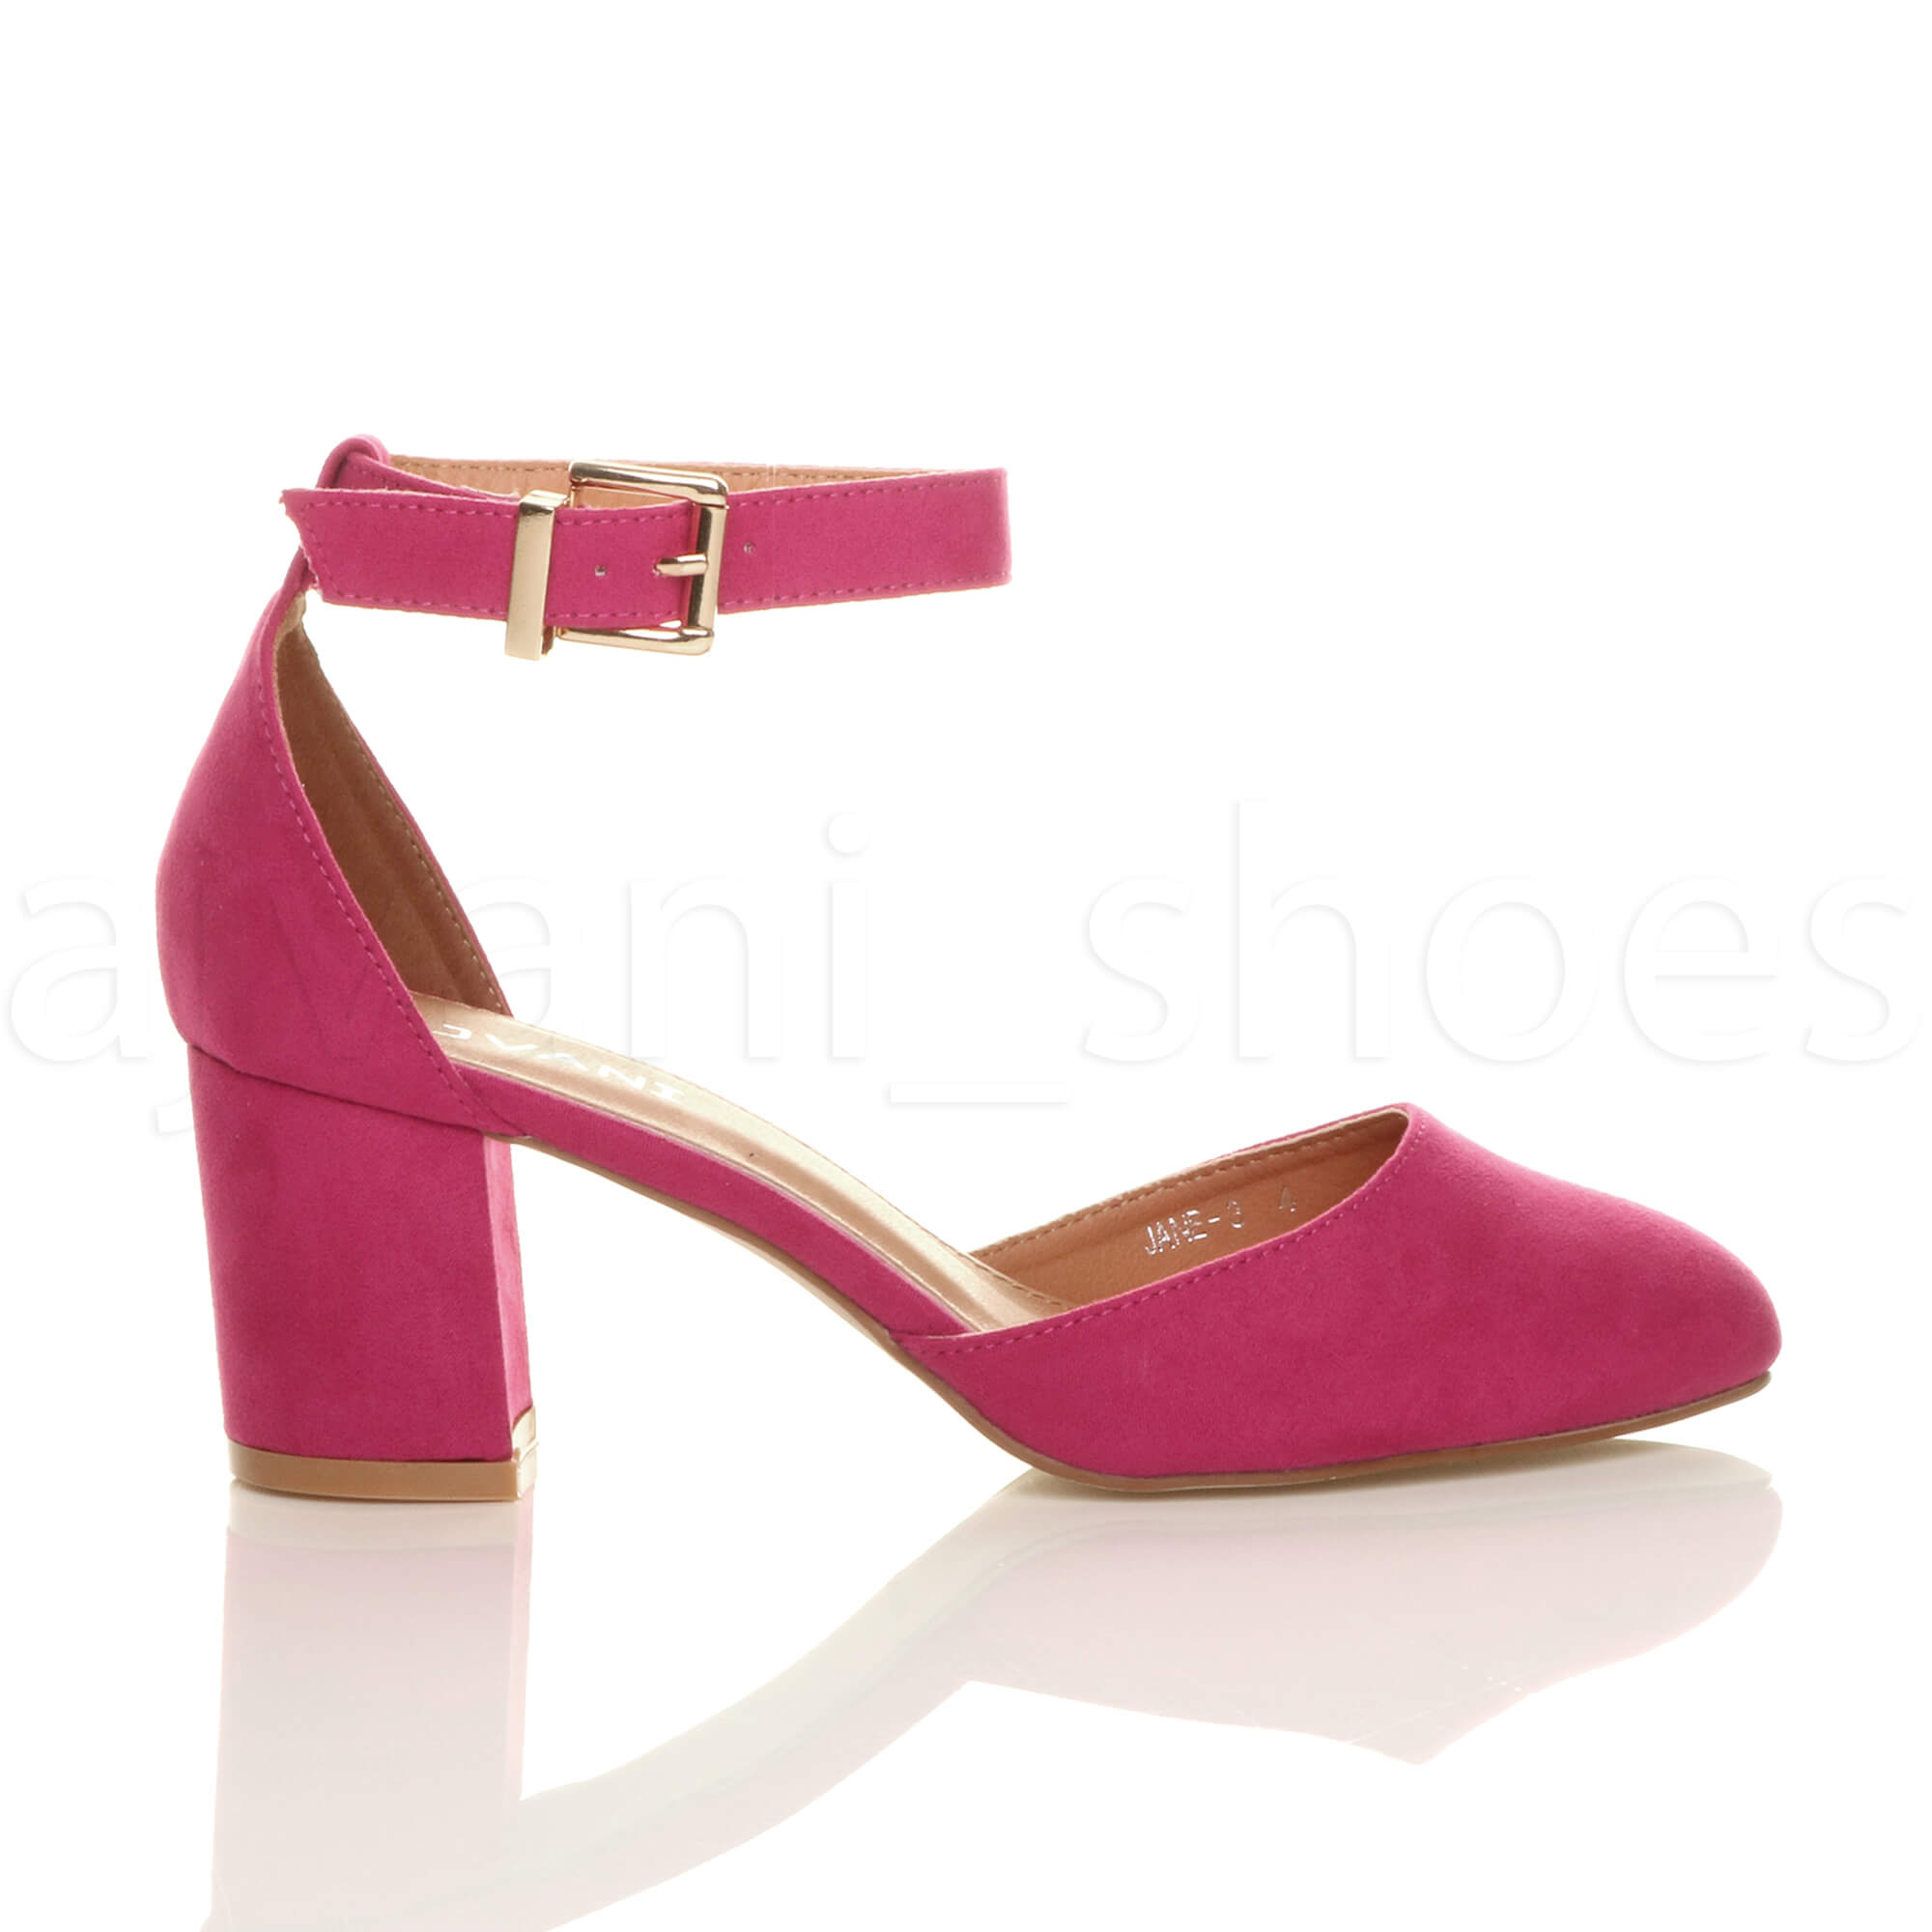 WOMENS-LADIES-LOW-MID-BLOCK-HEEL-ANKLE-STRAP-MARY-JANE-COURT-SHOES-SANDALS-SIZE thumbnail 43